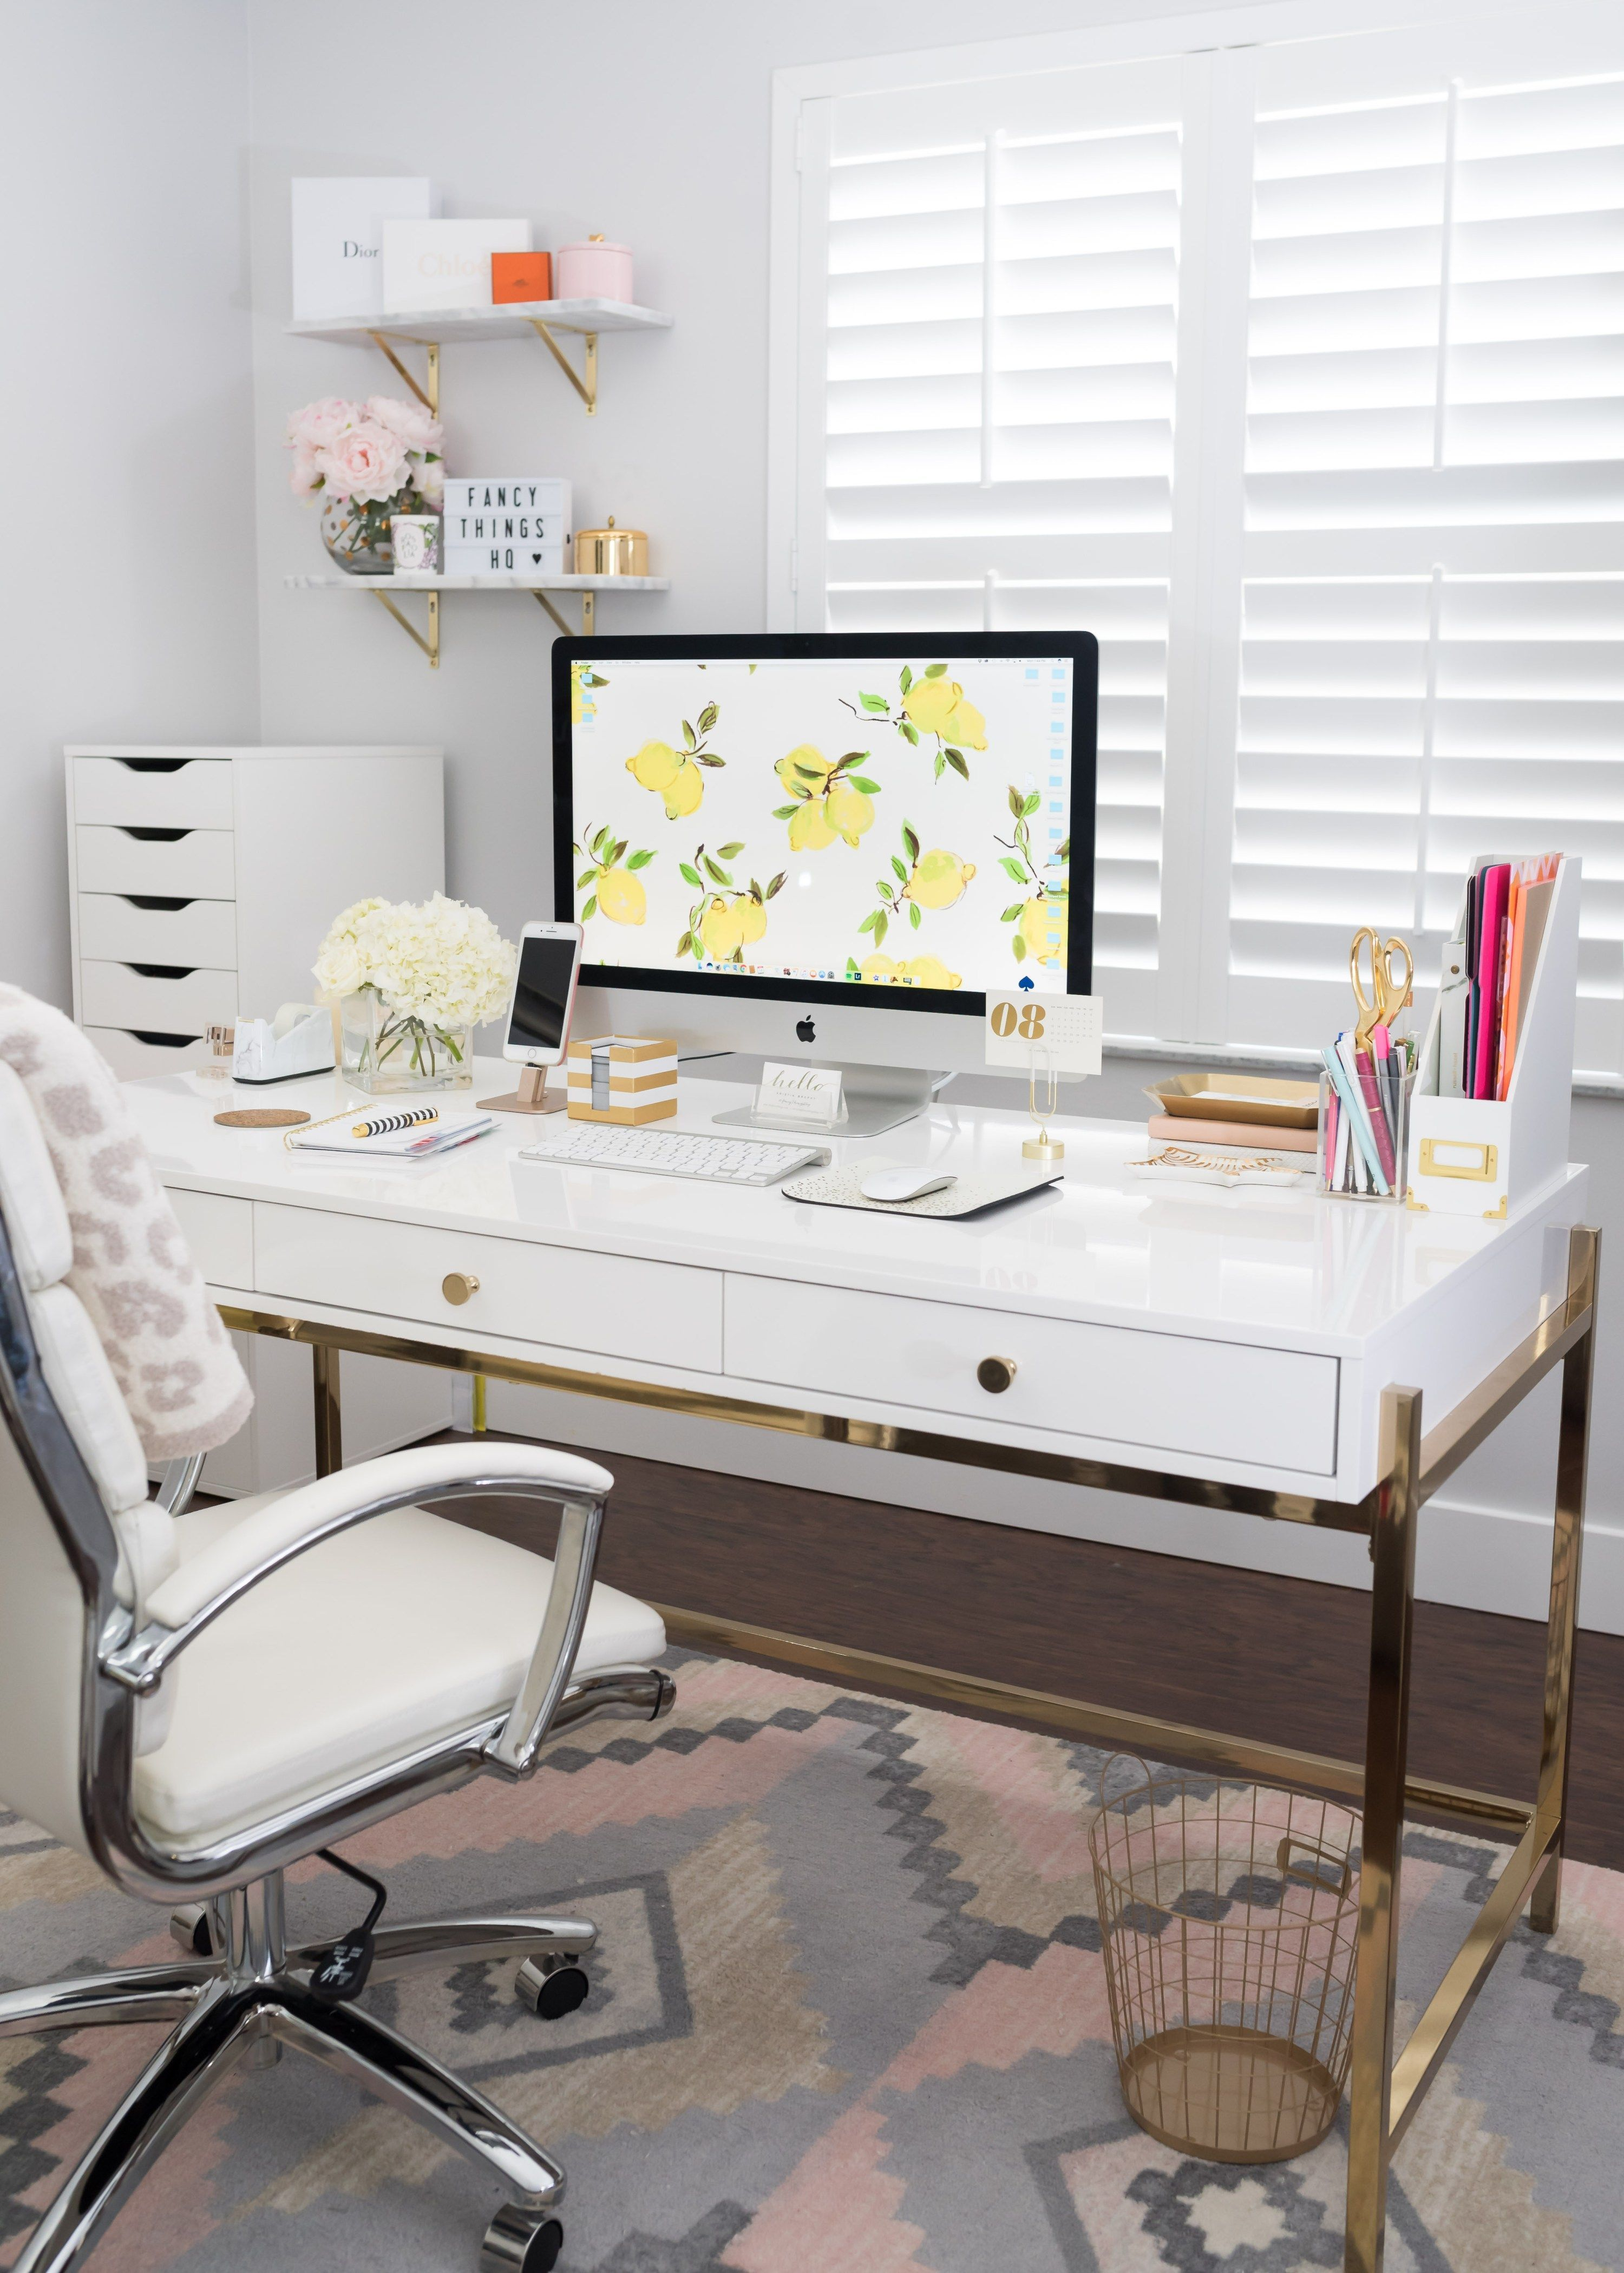 Cute Office Supplies And Decor Home Office Decor Home Office